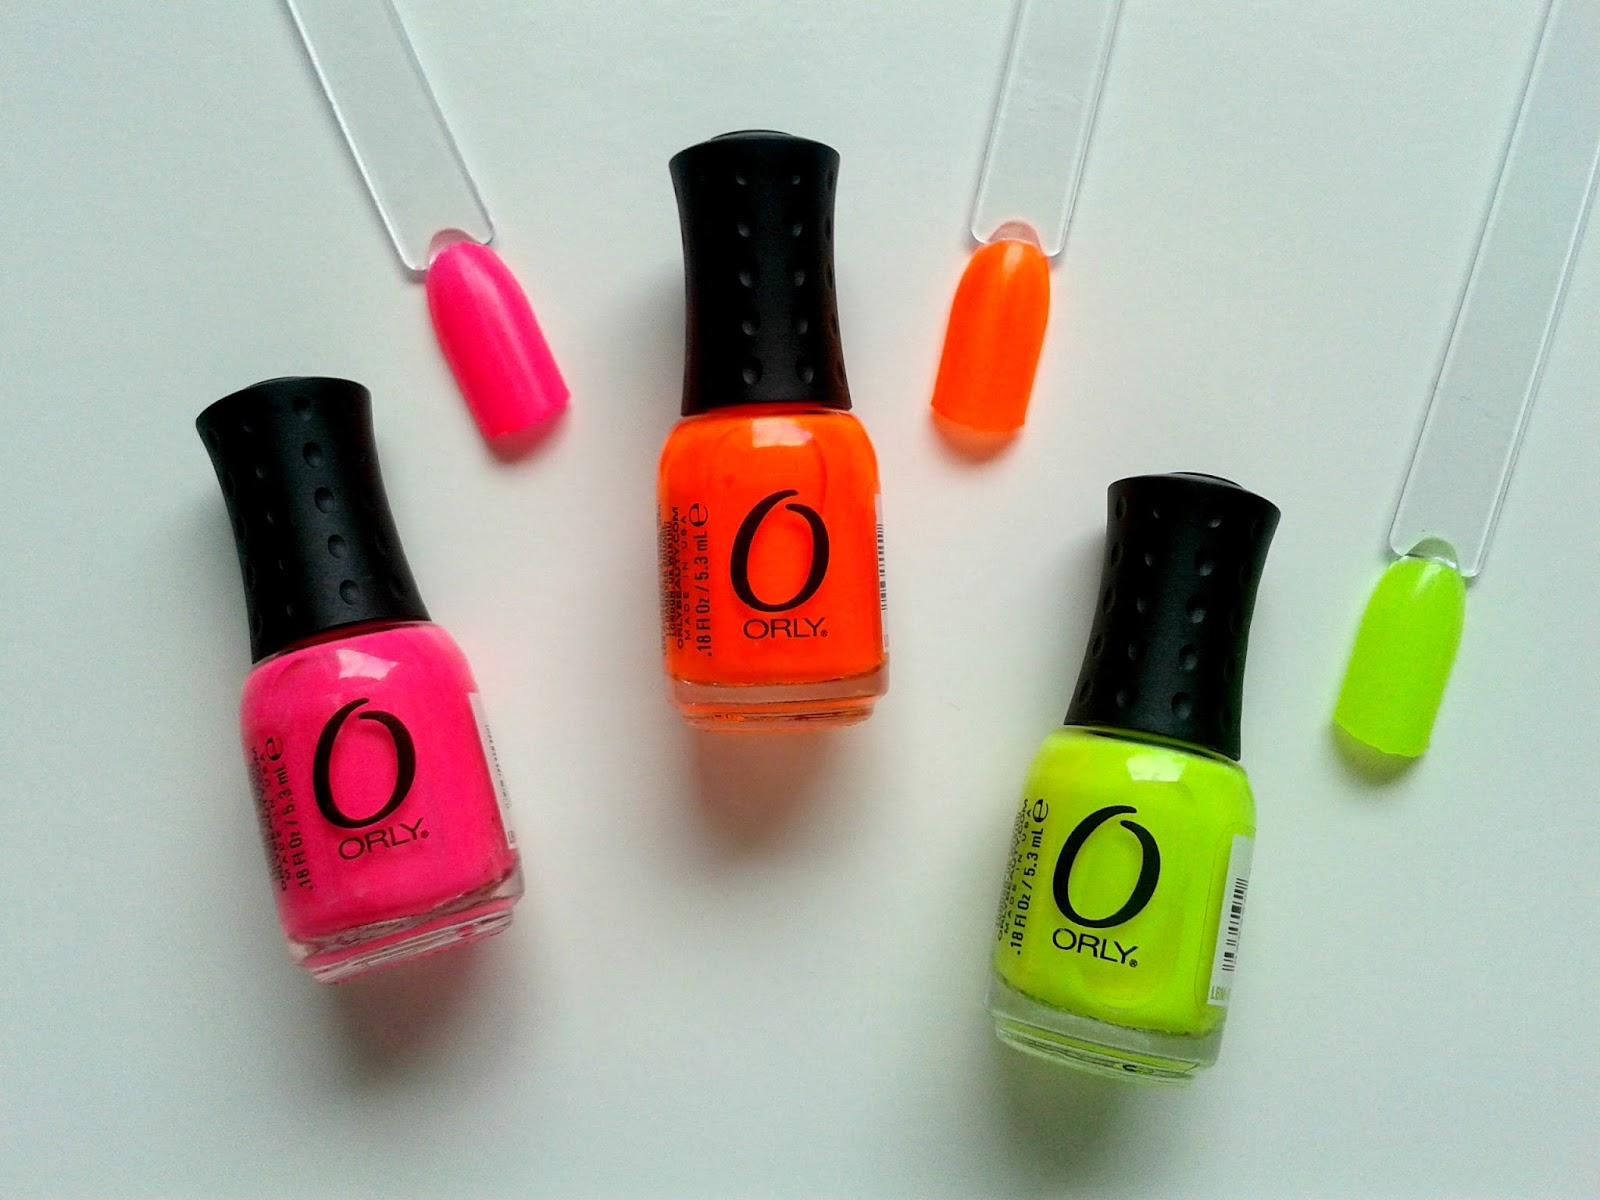 Orly Mani Mini Lacquer Trio Neon Shades Swatches Beauty Review